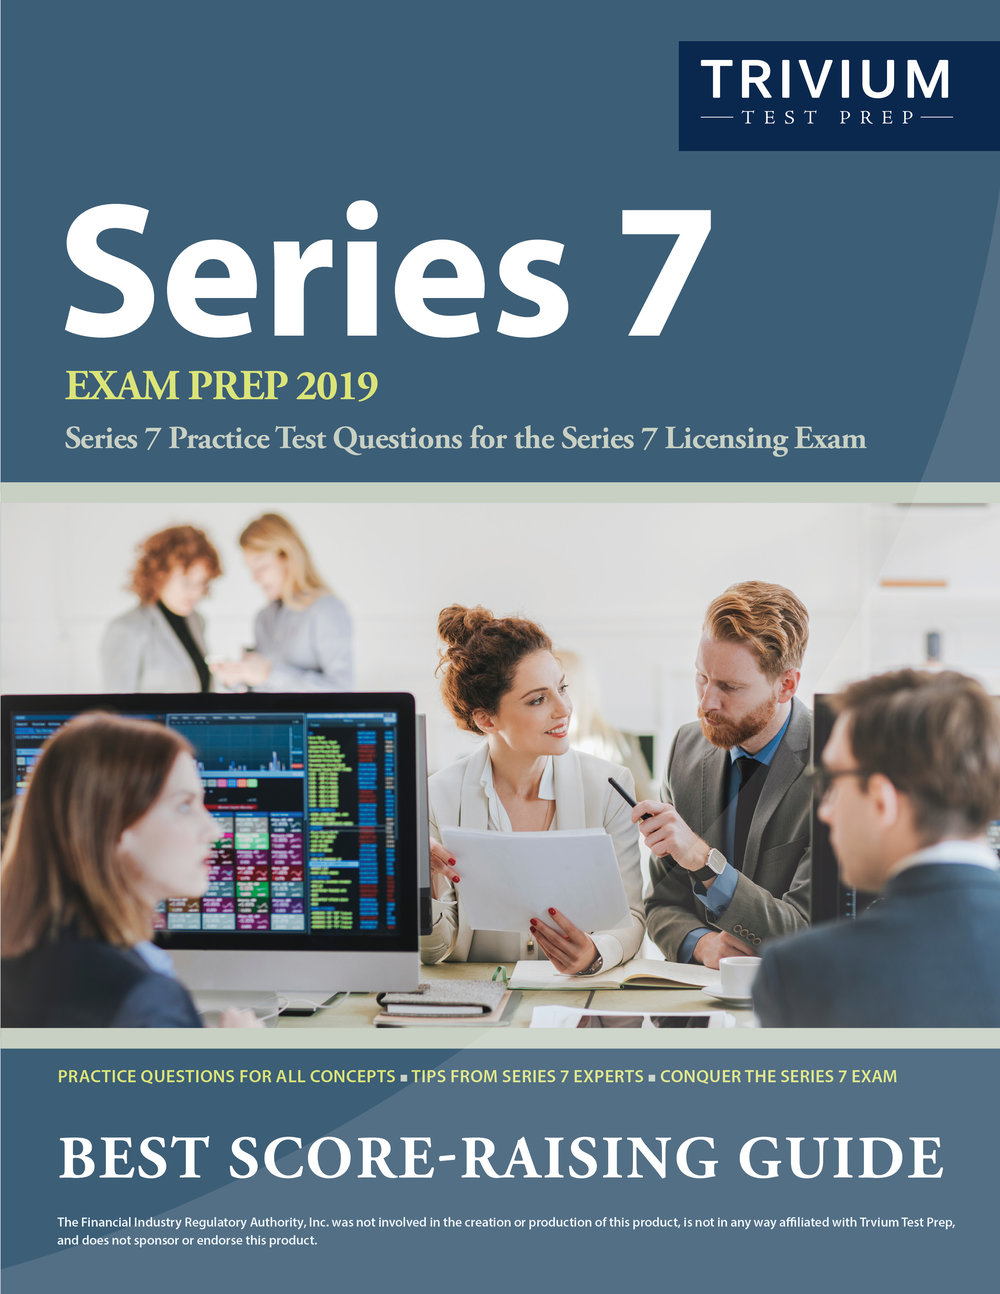 Series 7 Exam Prep 2019